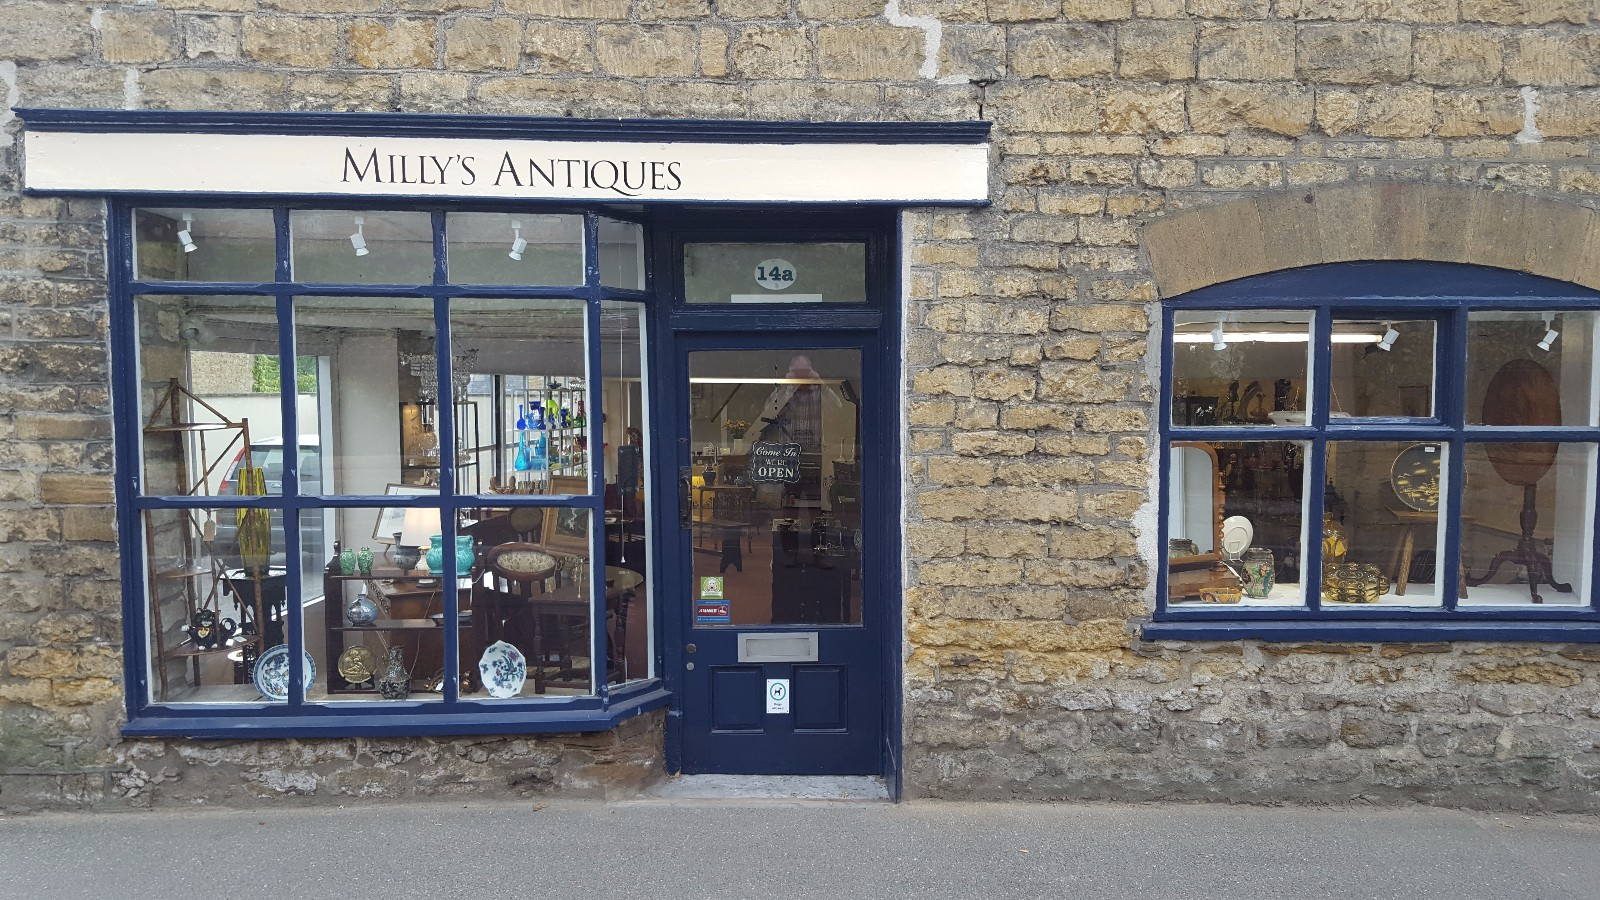 Milly's Antiques image (3 of 4)